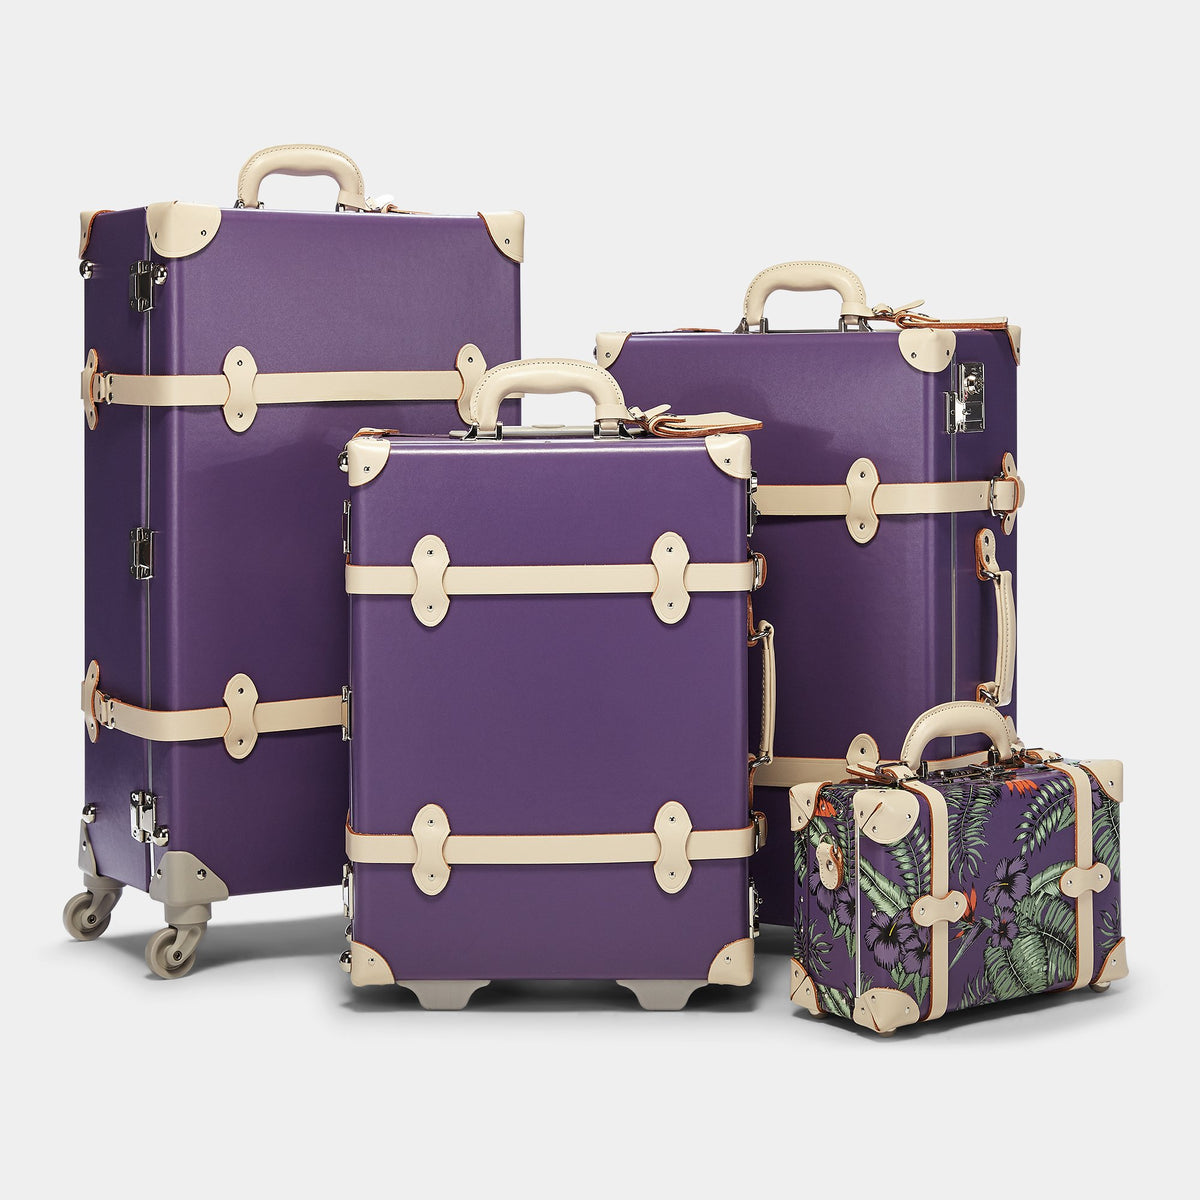 The Botanist Carryon in Purple - Vintage-Inspired Hand Luggage - Alongside matching cases from the Botanist Purple Collection